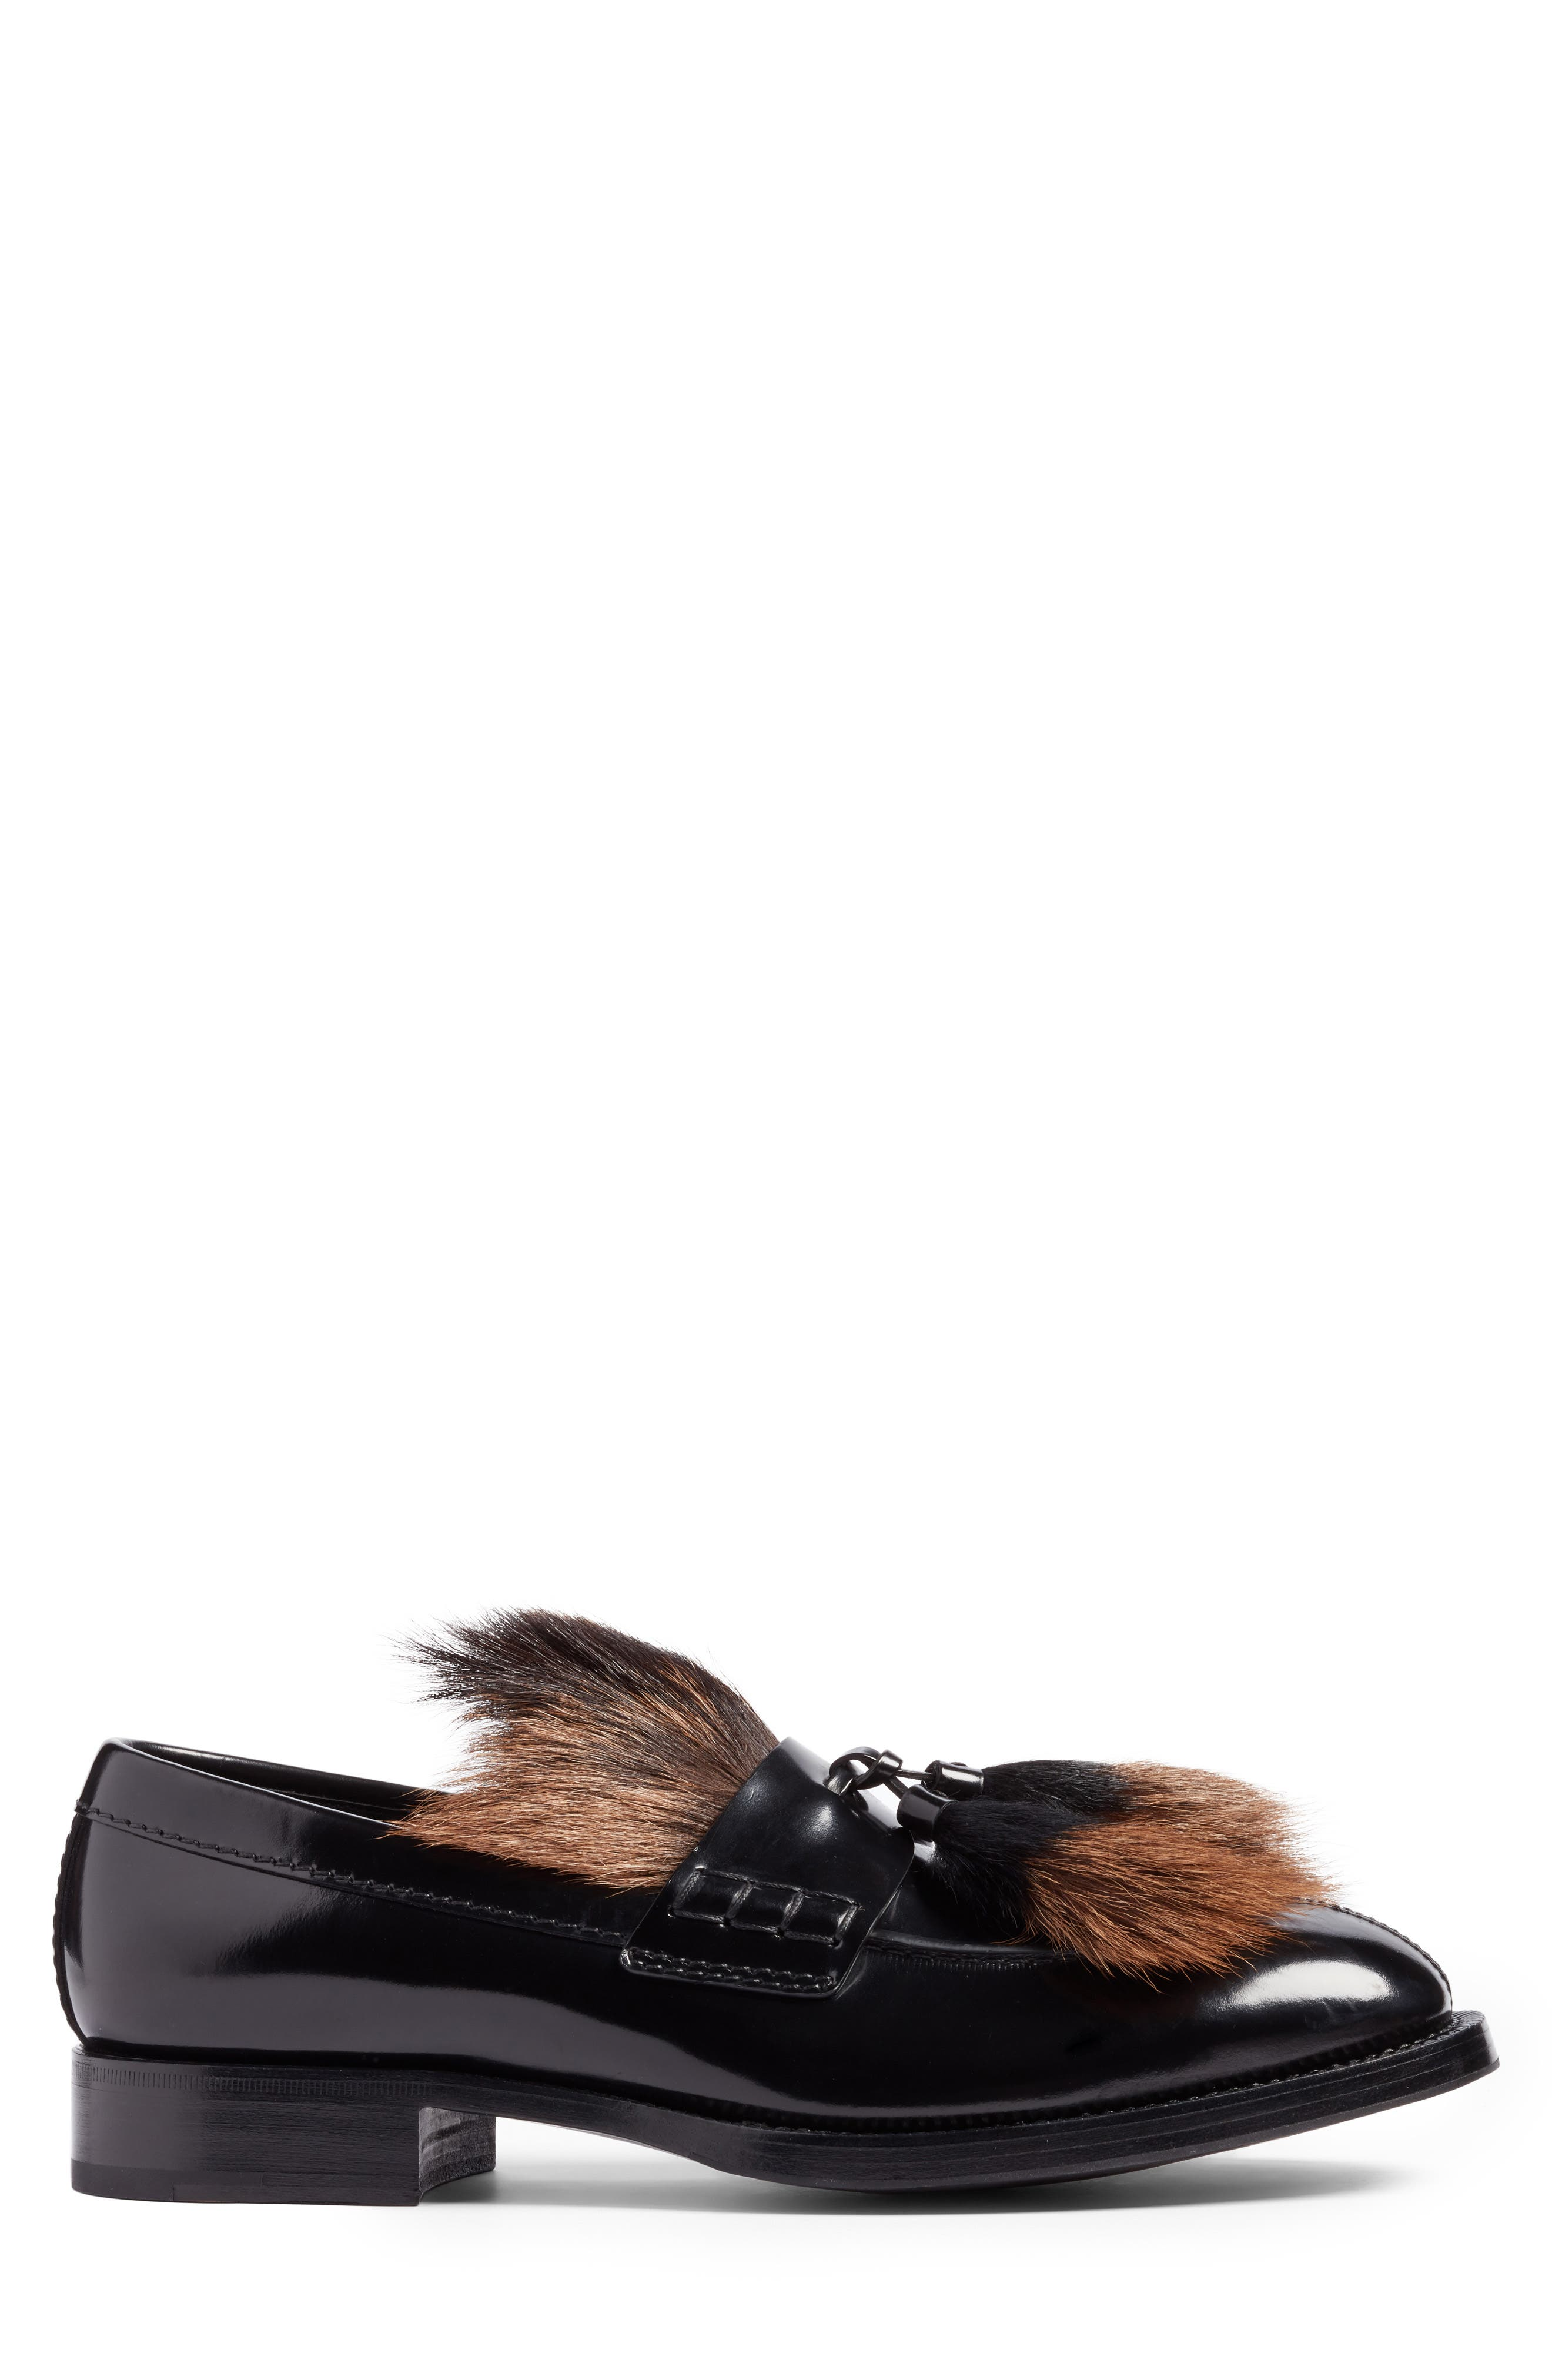 Tassel Loafer with Genuine Goat Hair Trim,                             Alternate thumbnail 3, color,                             Nero Leather